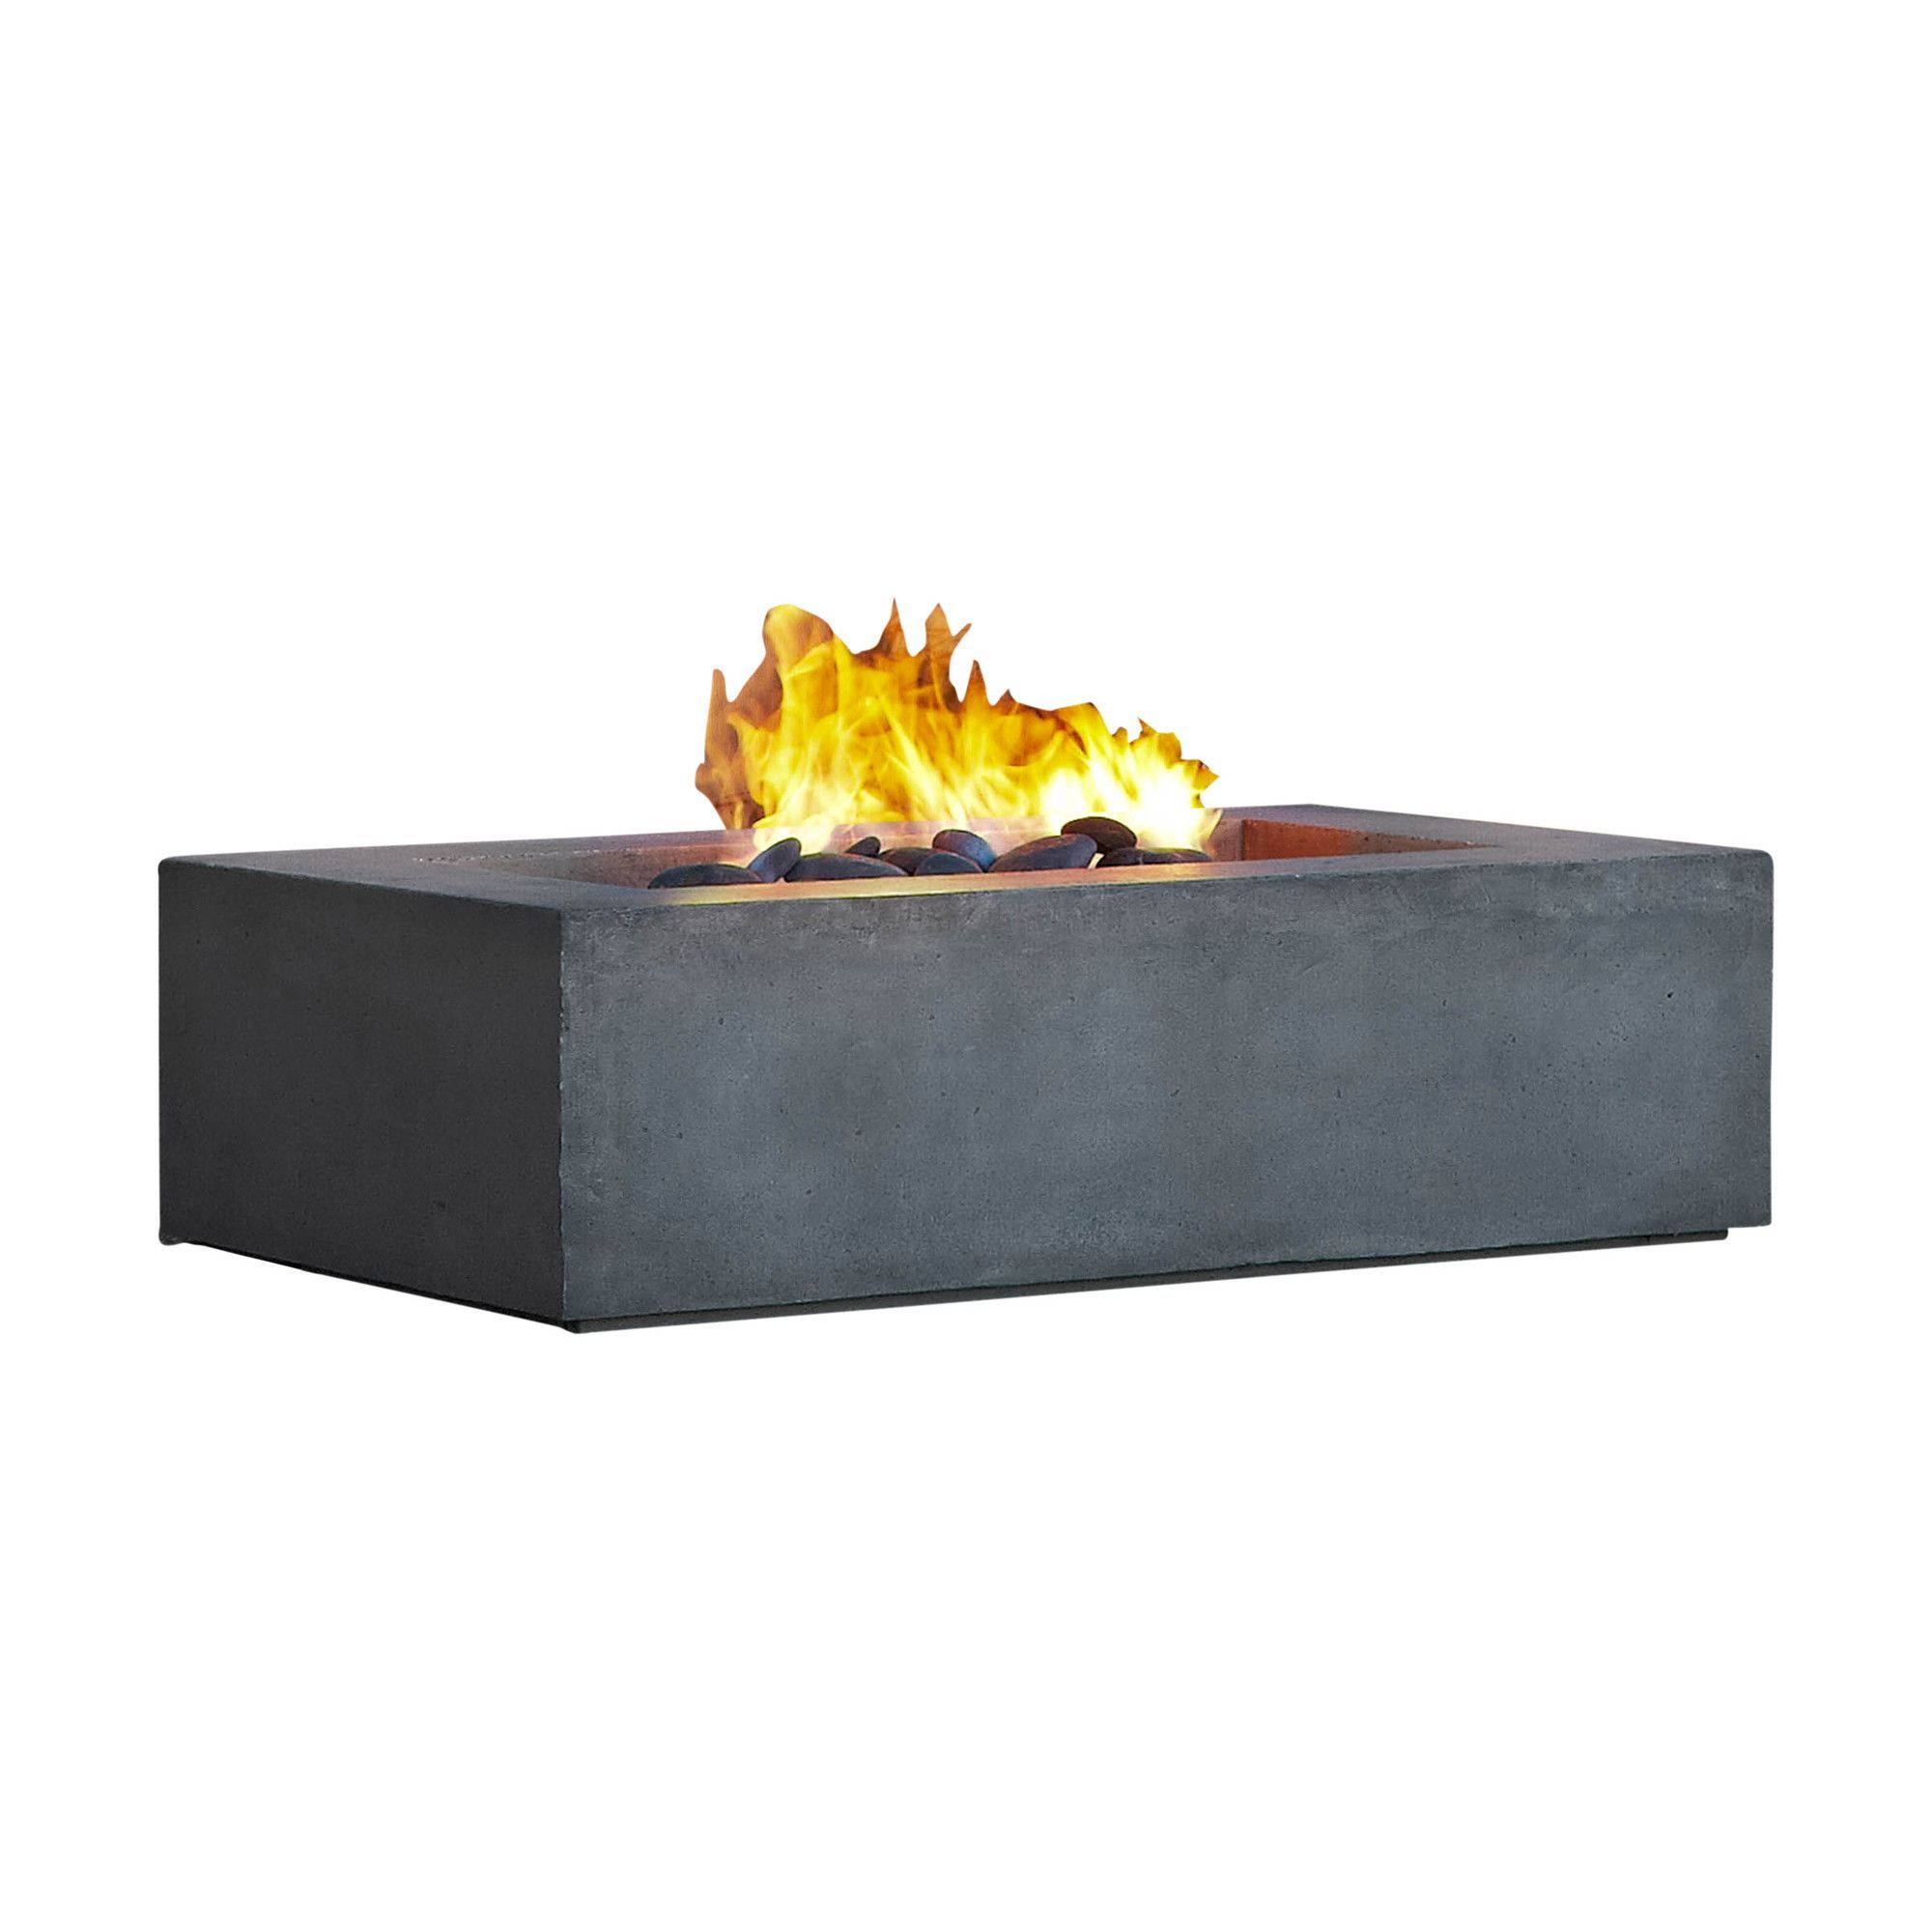 baltic natural gas fire pit table products pinterest natural